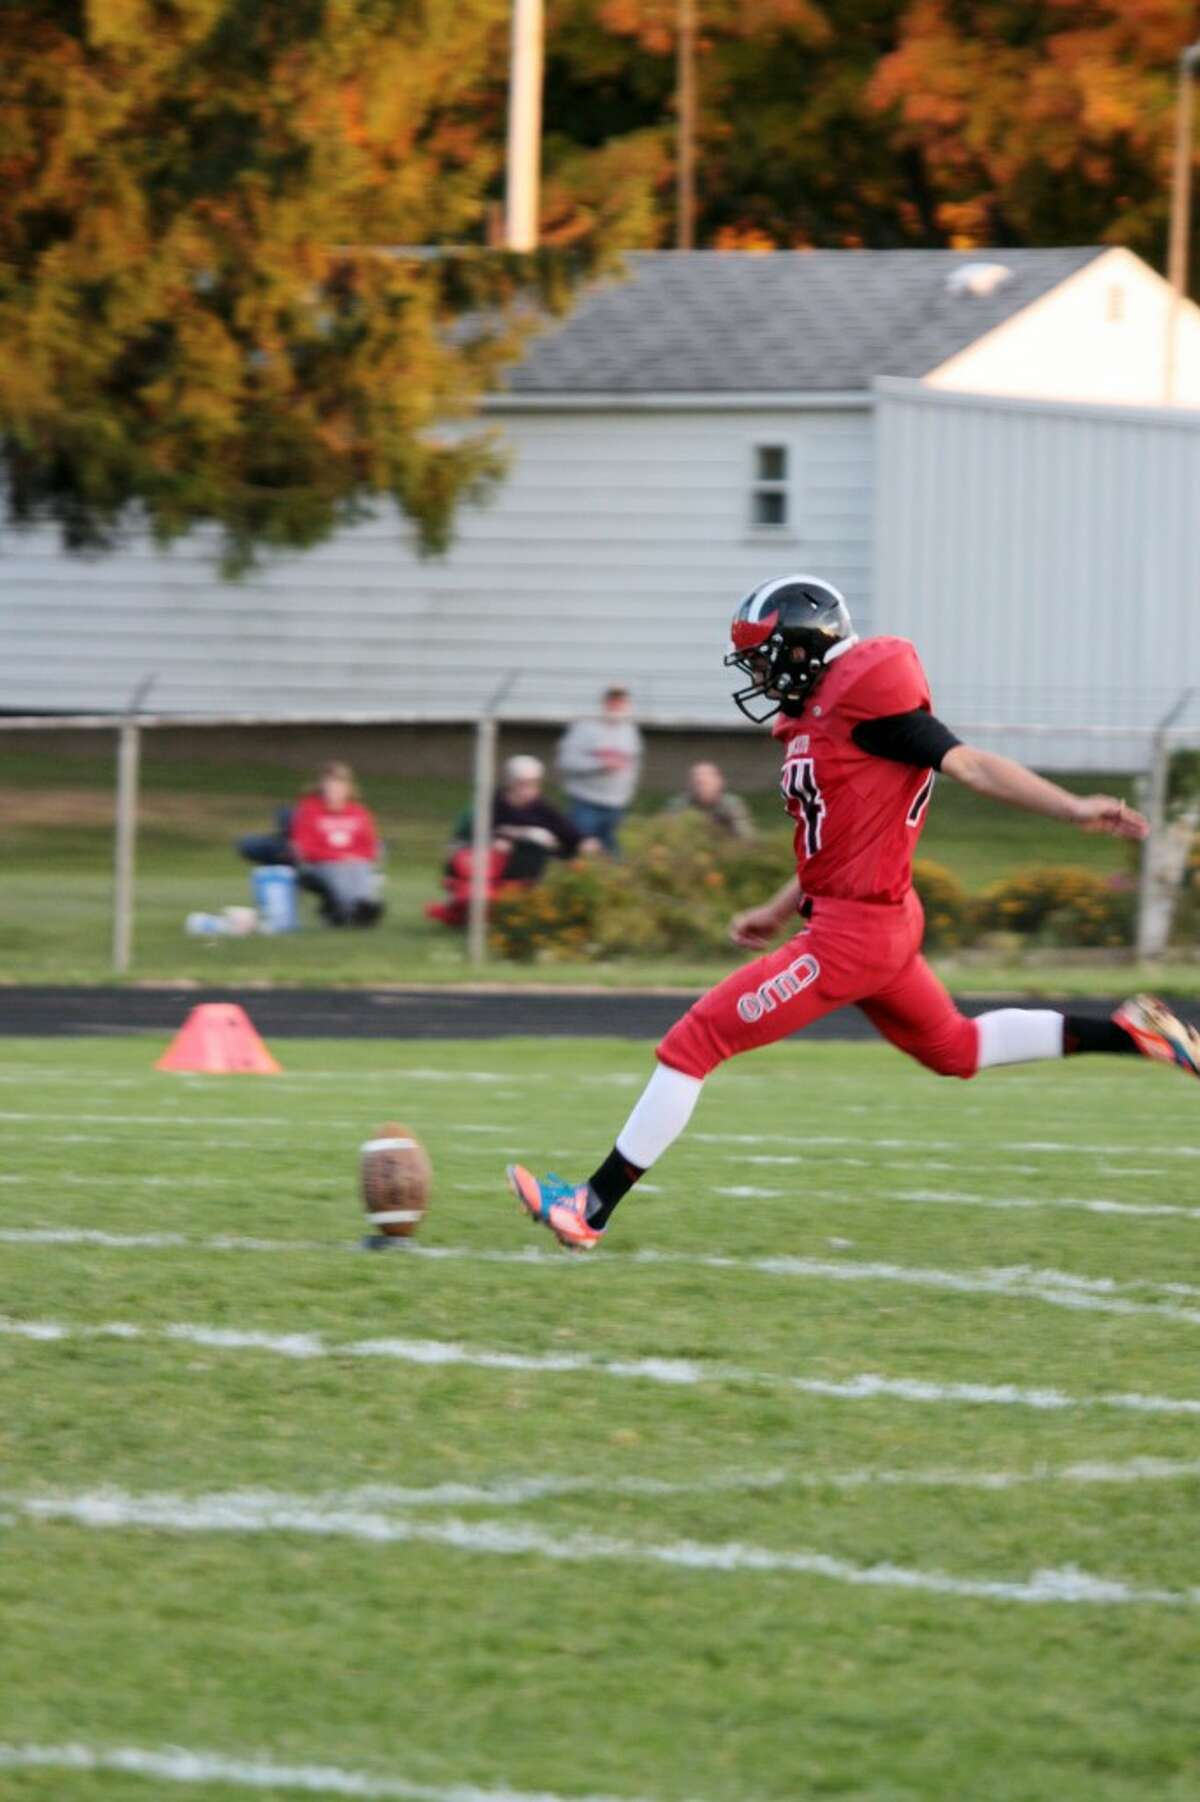 KICKING IT OLD SCHOOL: Ricky Droke does his kicking duties against Chippewa Hills. (Herald Review photo/Justin McKee)